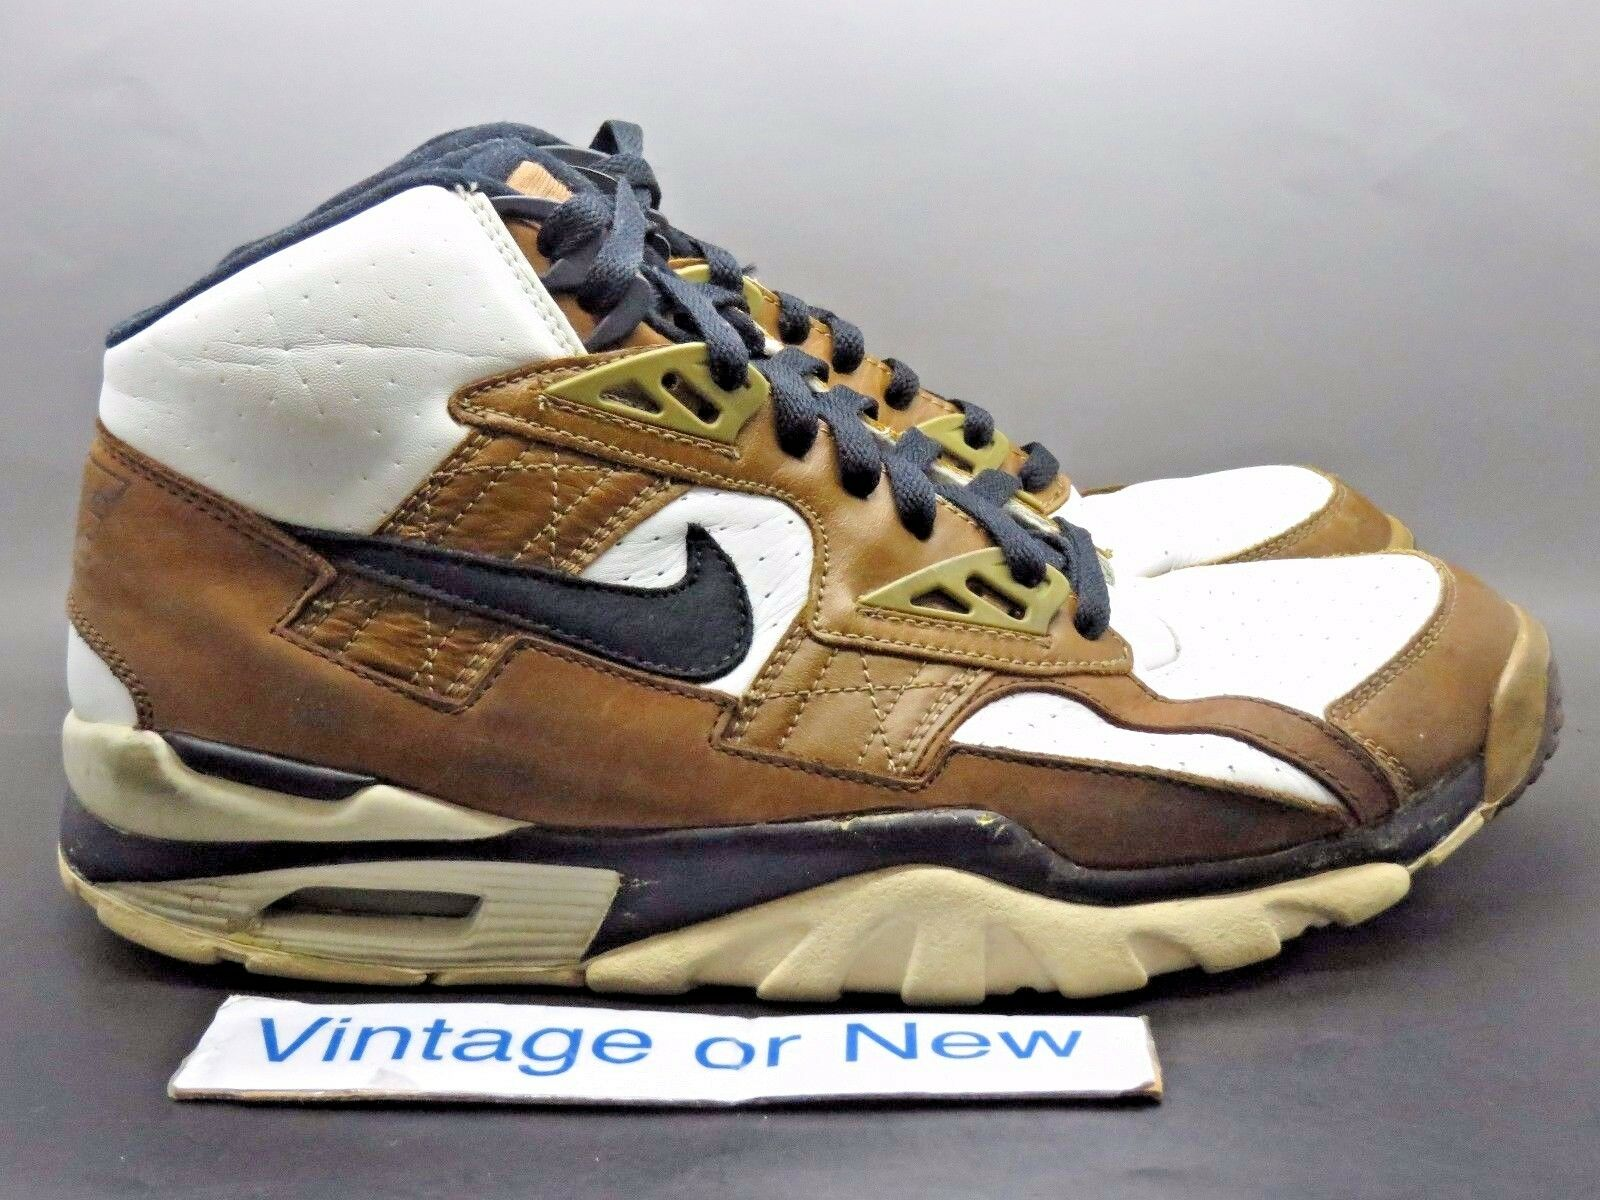 VTG Nike Air Trainer SC High Escape Bo Jackson 2018 Price reduction Seasonal price cuts, discount benefits